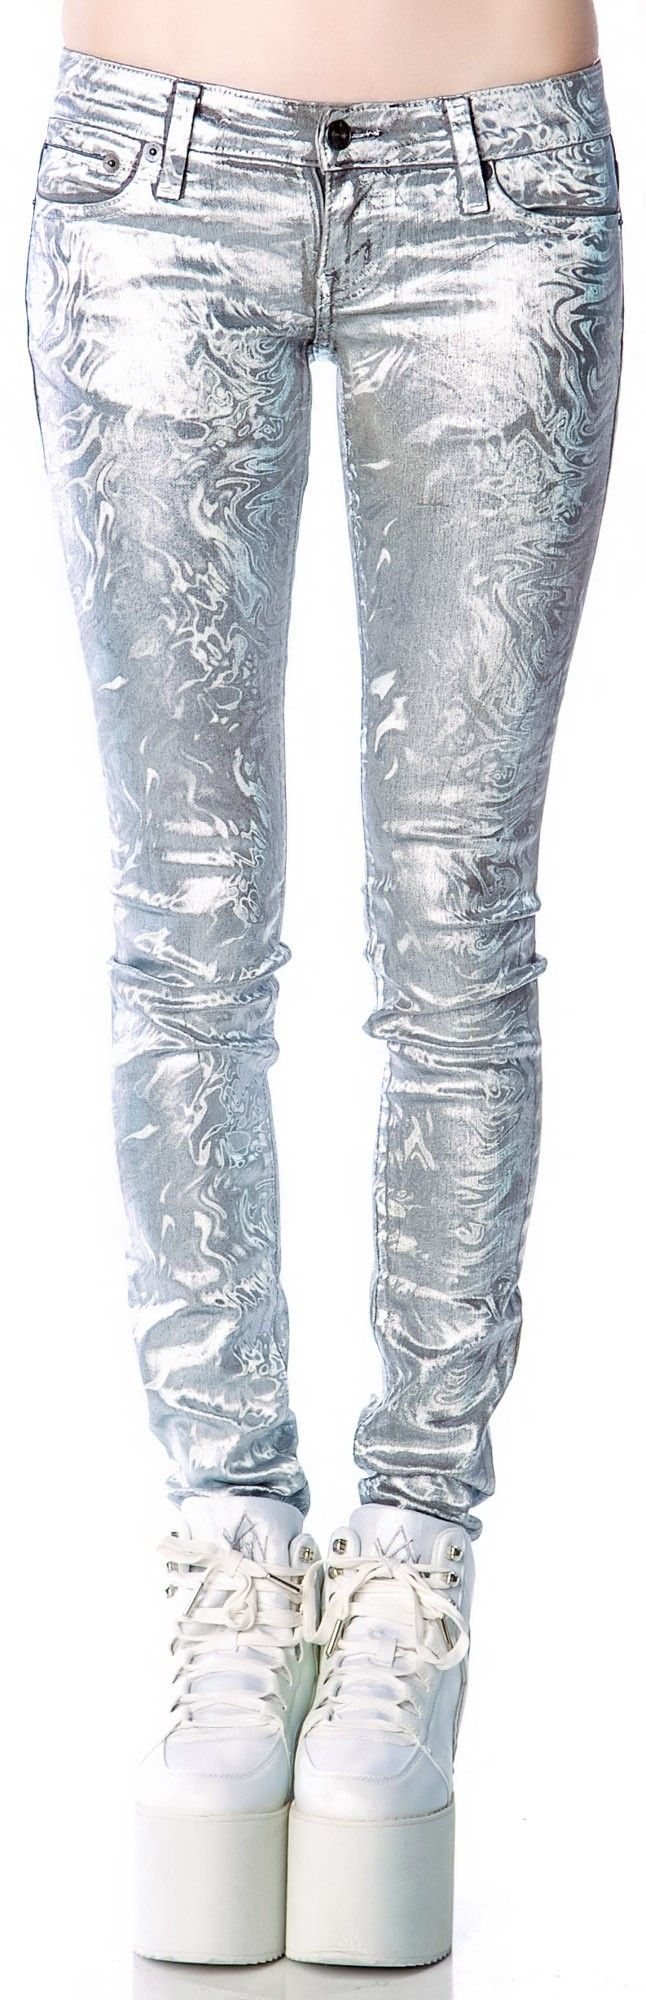 Kill City Melting Holographic Foil Junkie Jeans | Dolls Kill